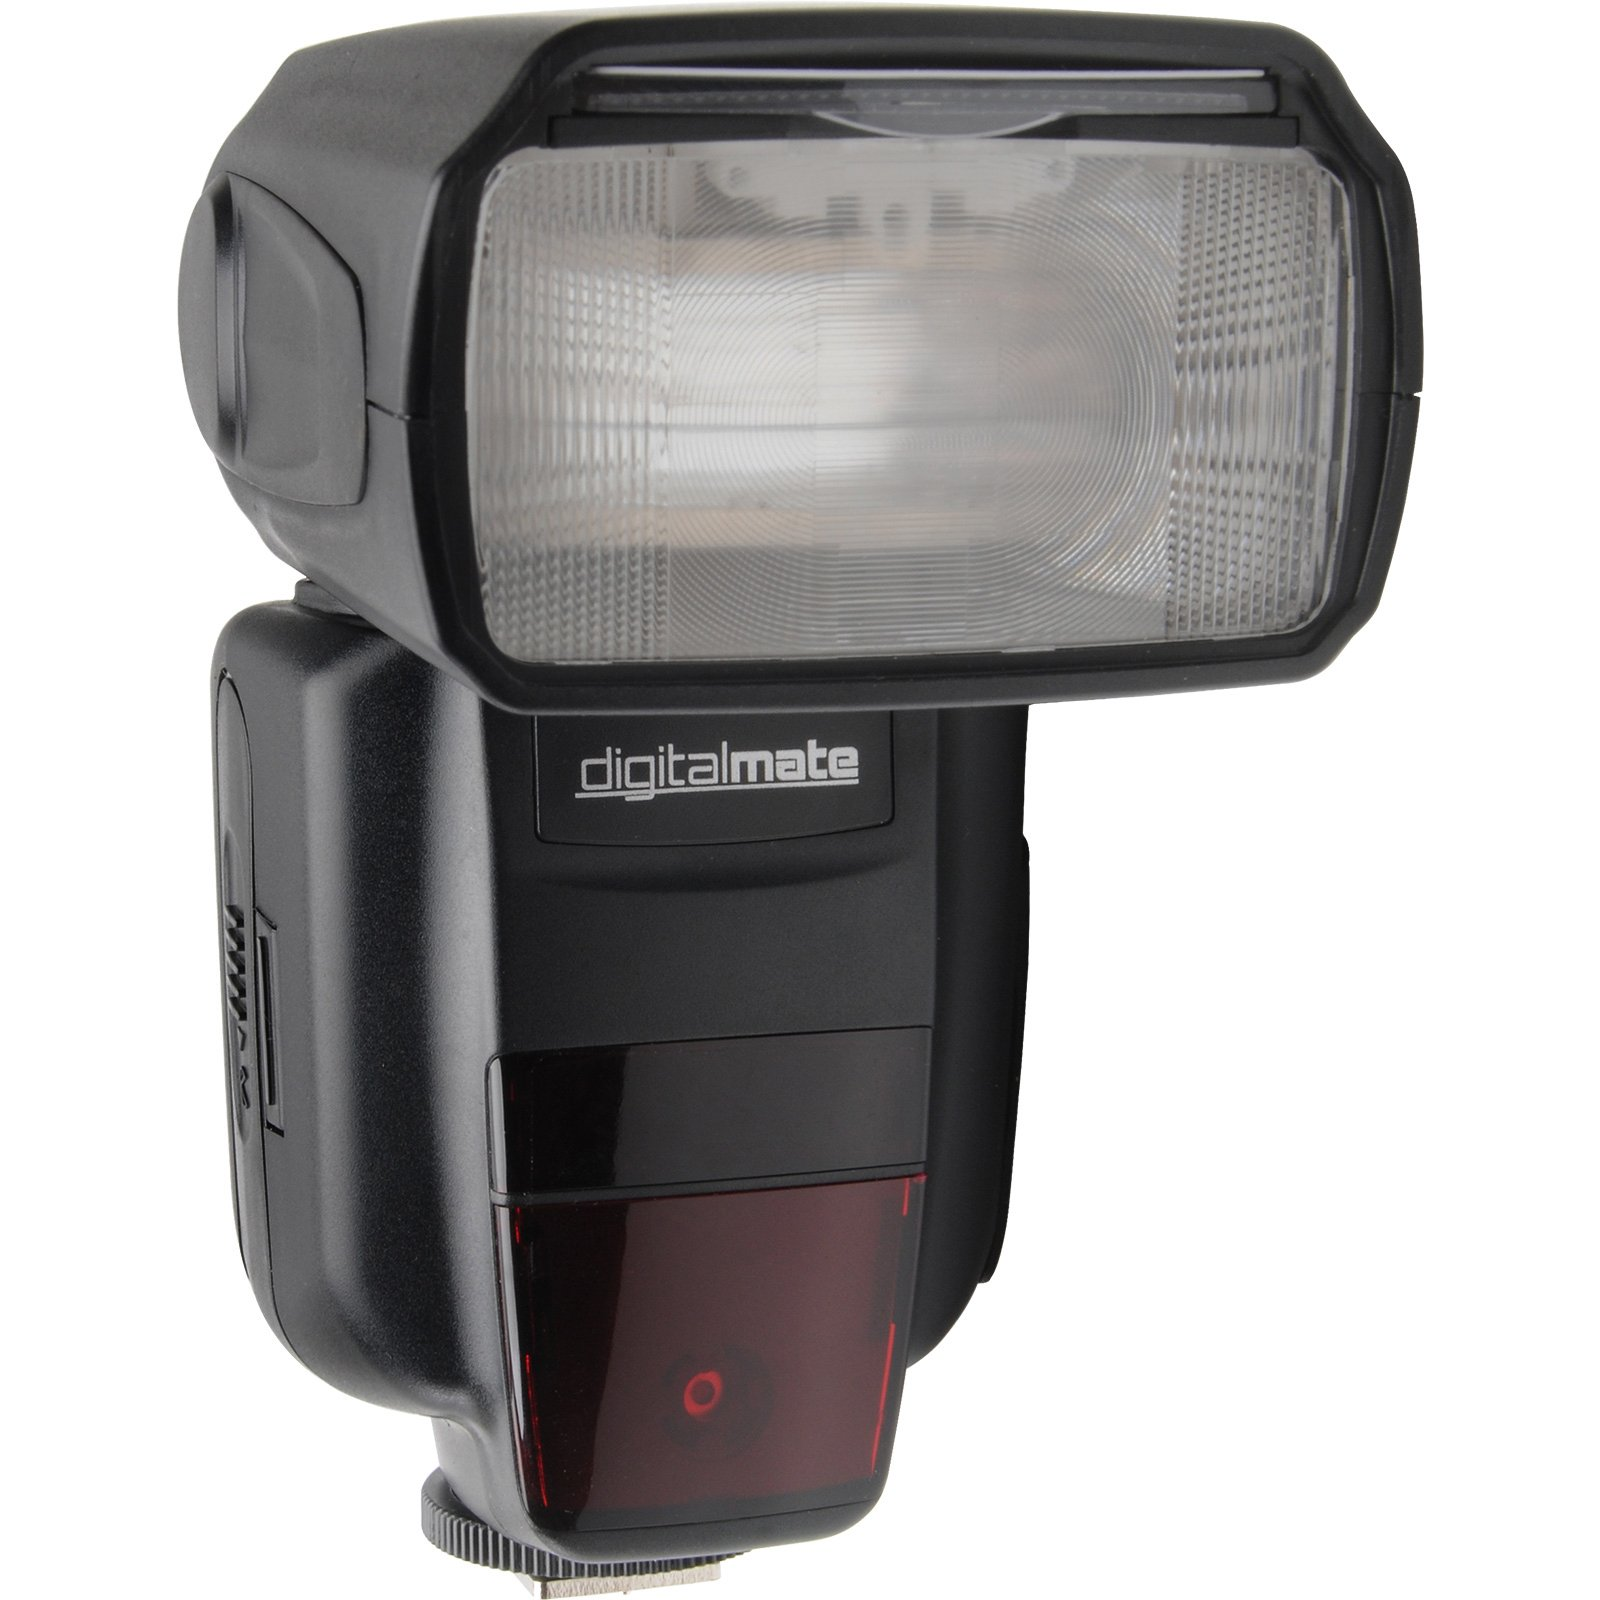 Digitalmate DM680EX SpeedLight Power Zoom 18-180mm Super High TTL Flash with Dual Slave Mode, Bounce and Diffuser Dedicated for Canon DSLR Digital Cameras